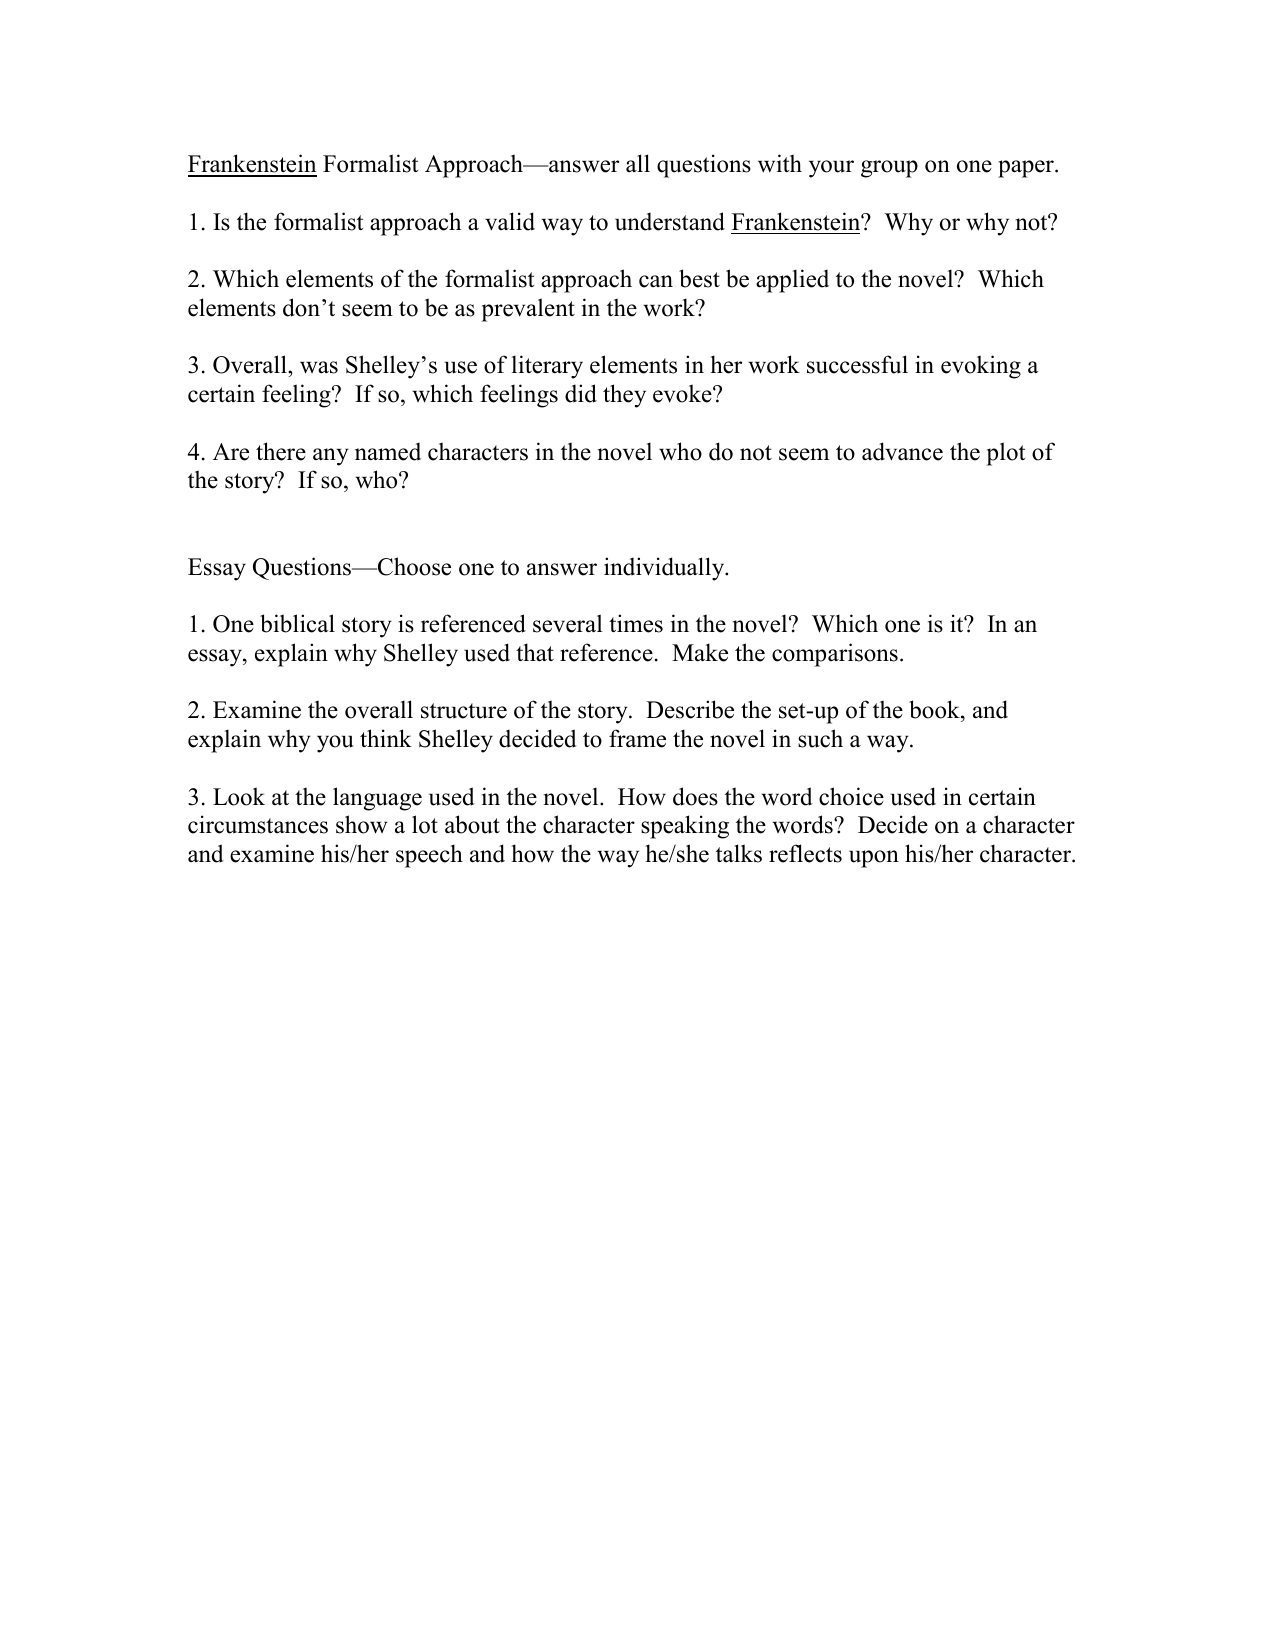 frankenstein for st approach answer all questions your